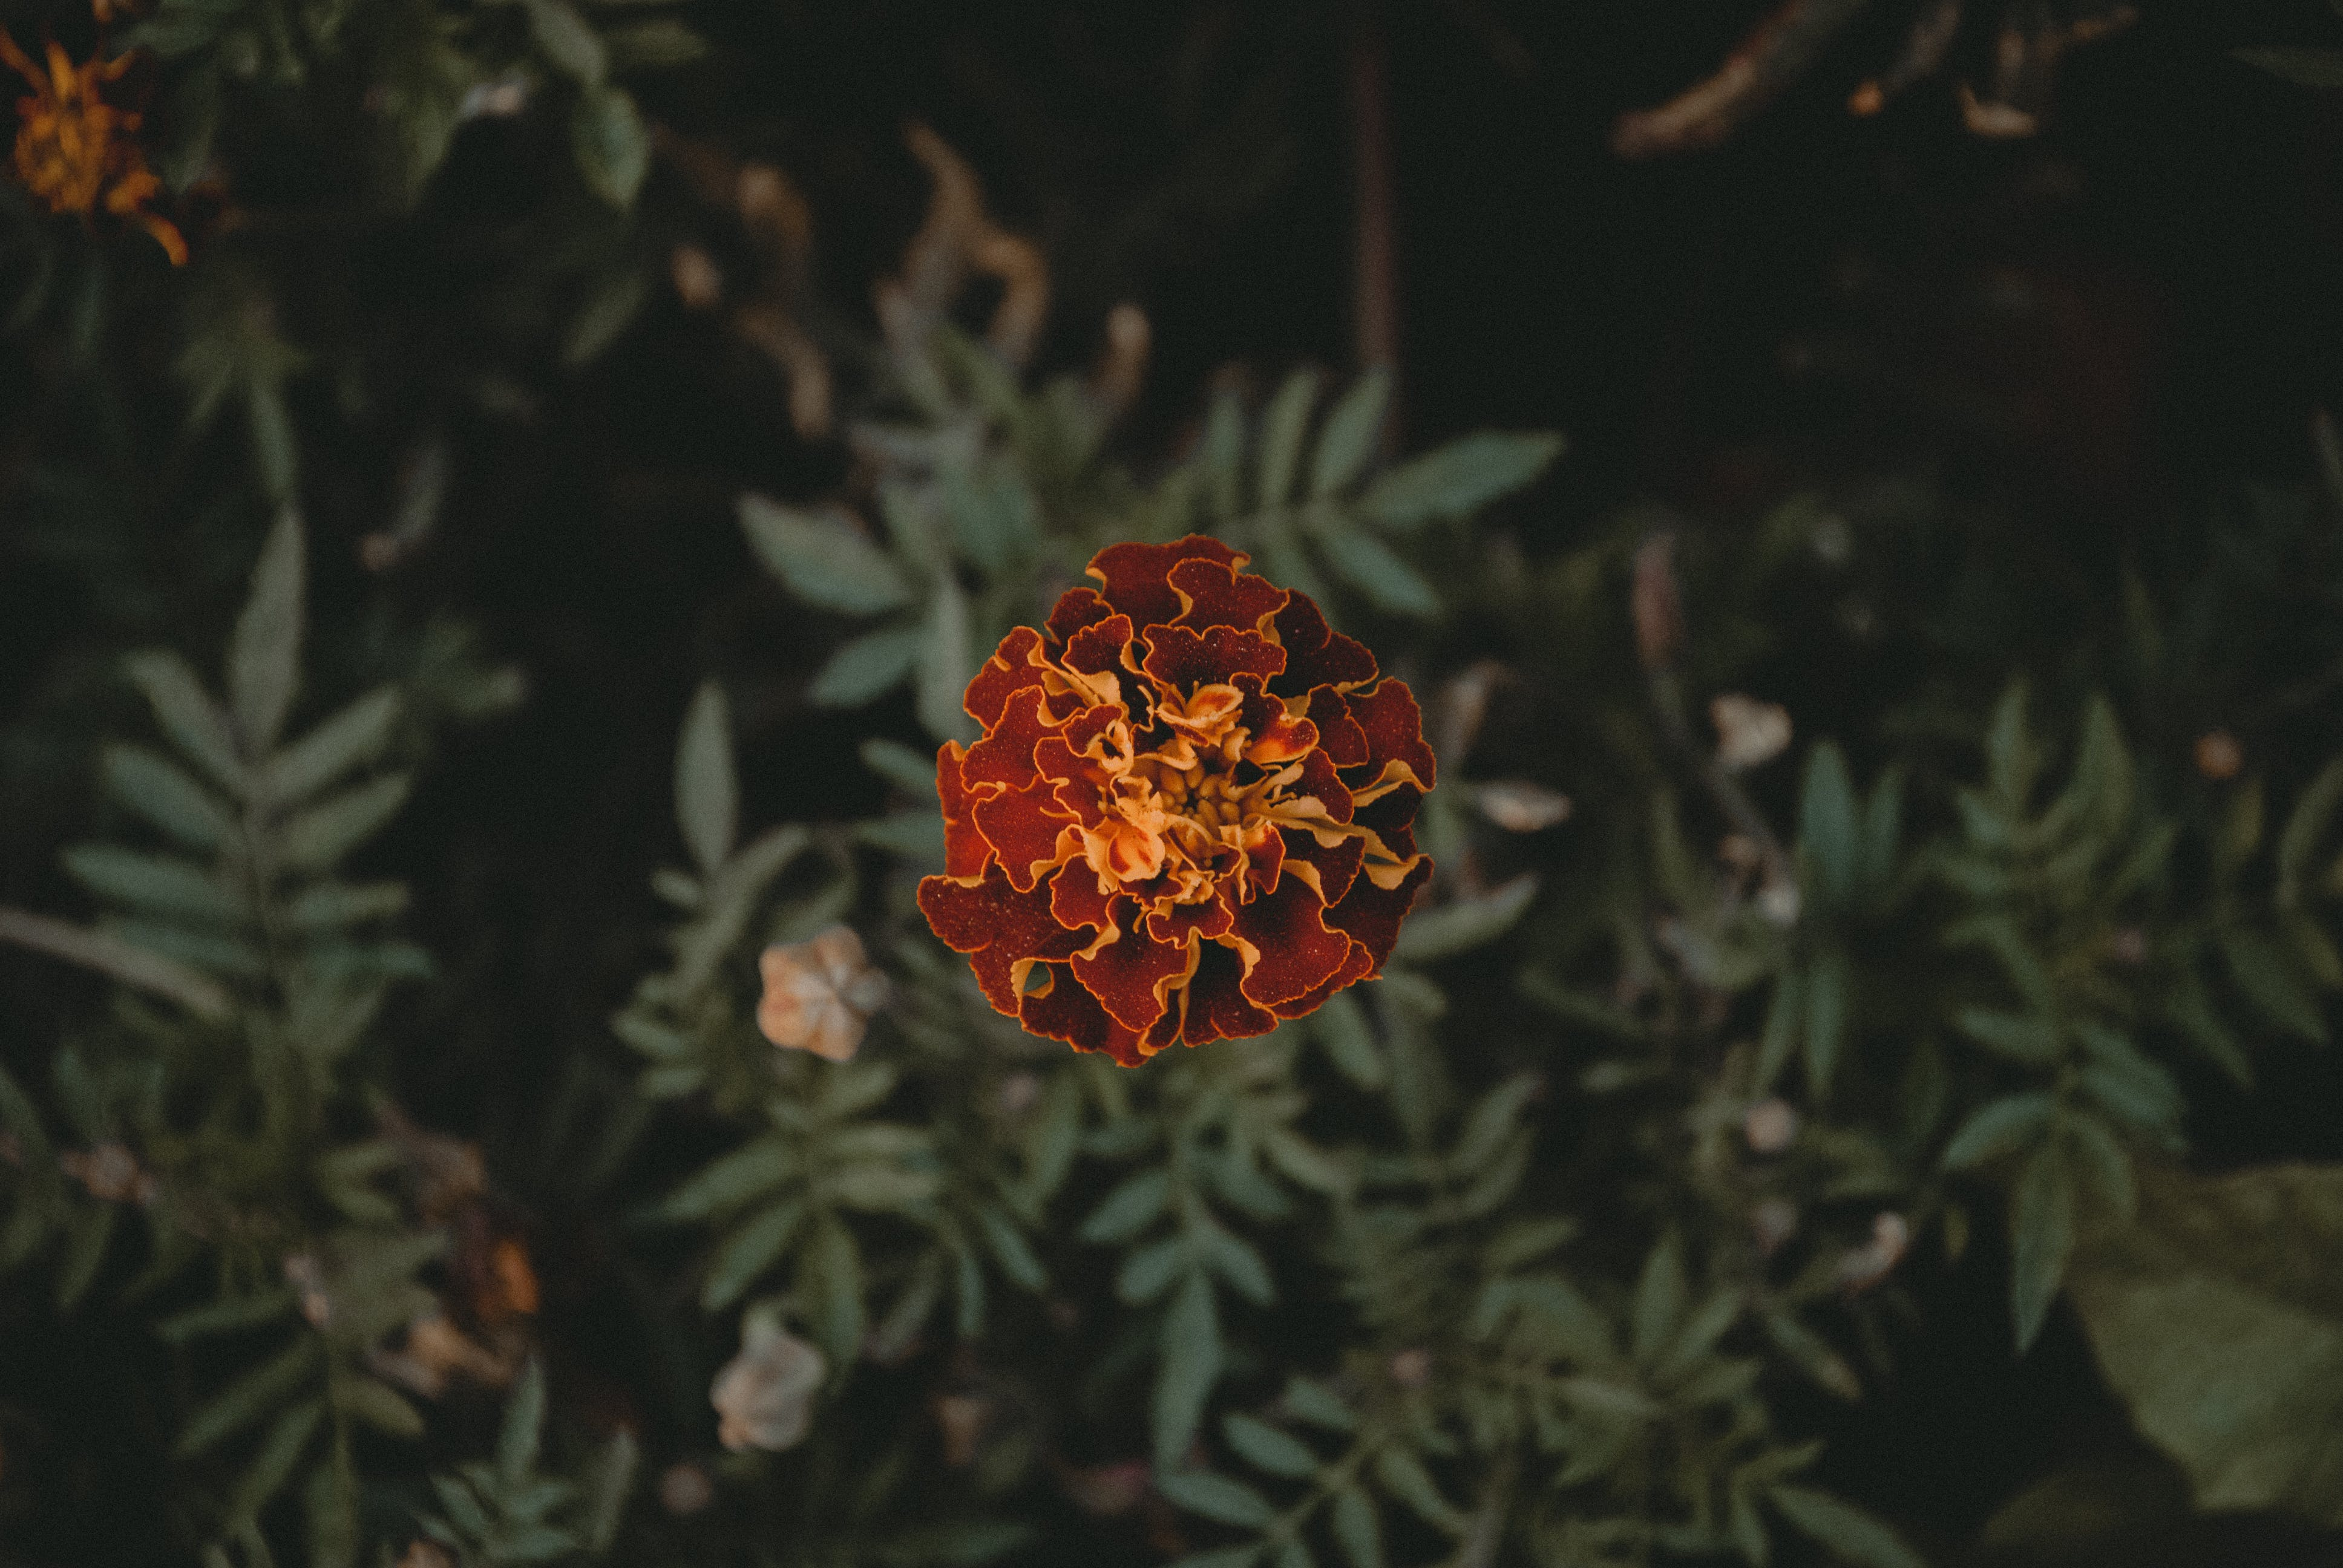 Top View Photo of Red French Marigold Flower